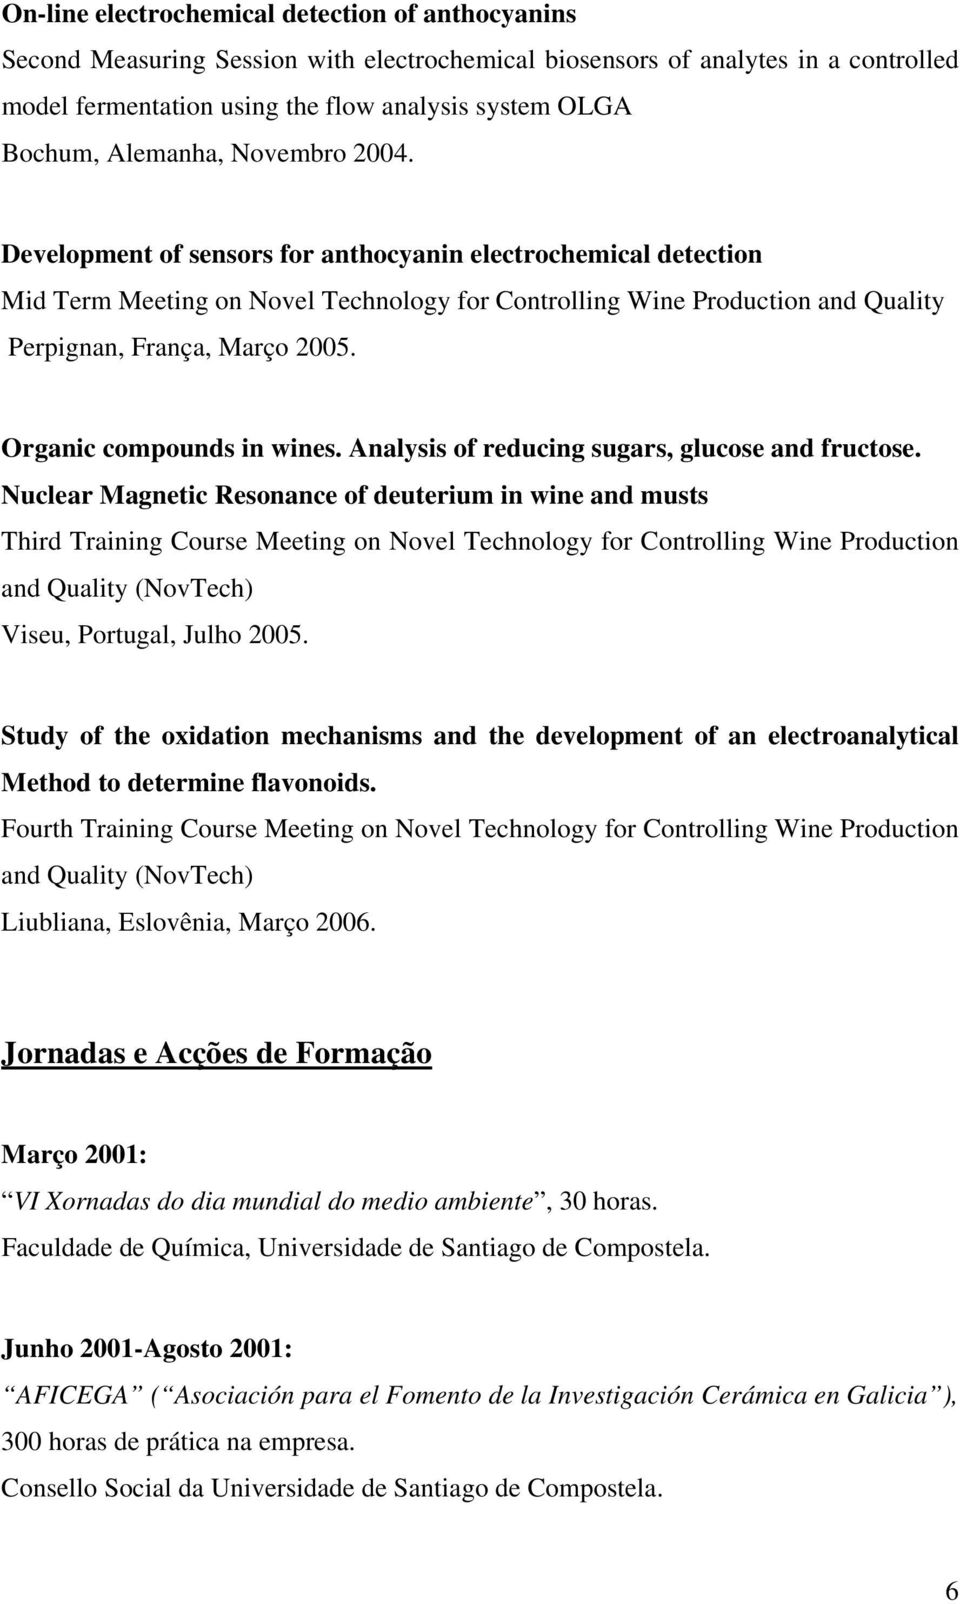 Development of sensors for anthocyanin electrochemical detection Mid Term Meeting on Novel Technology for Controlling Wine Production and Quality Perpignan, França, Março 2005.